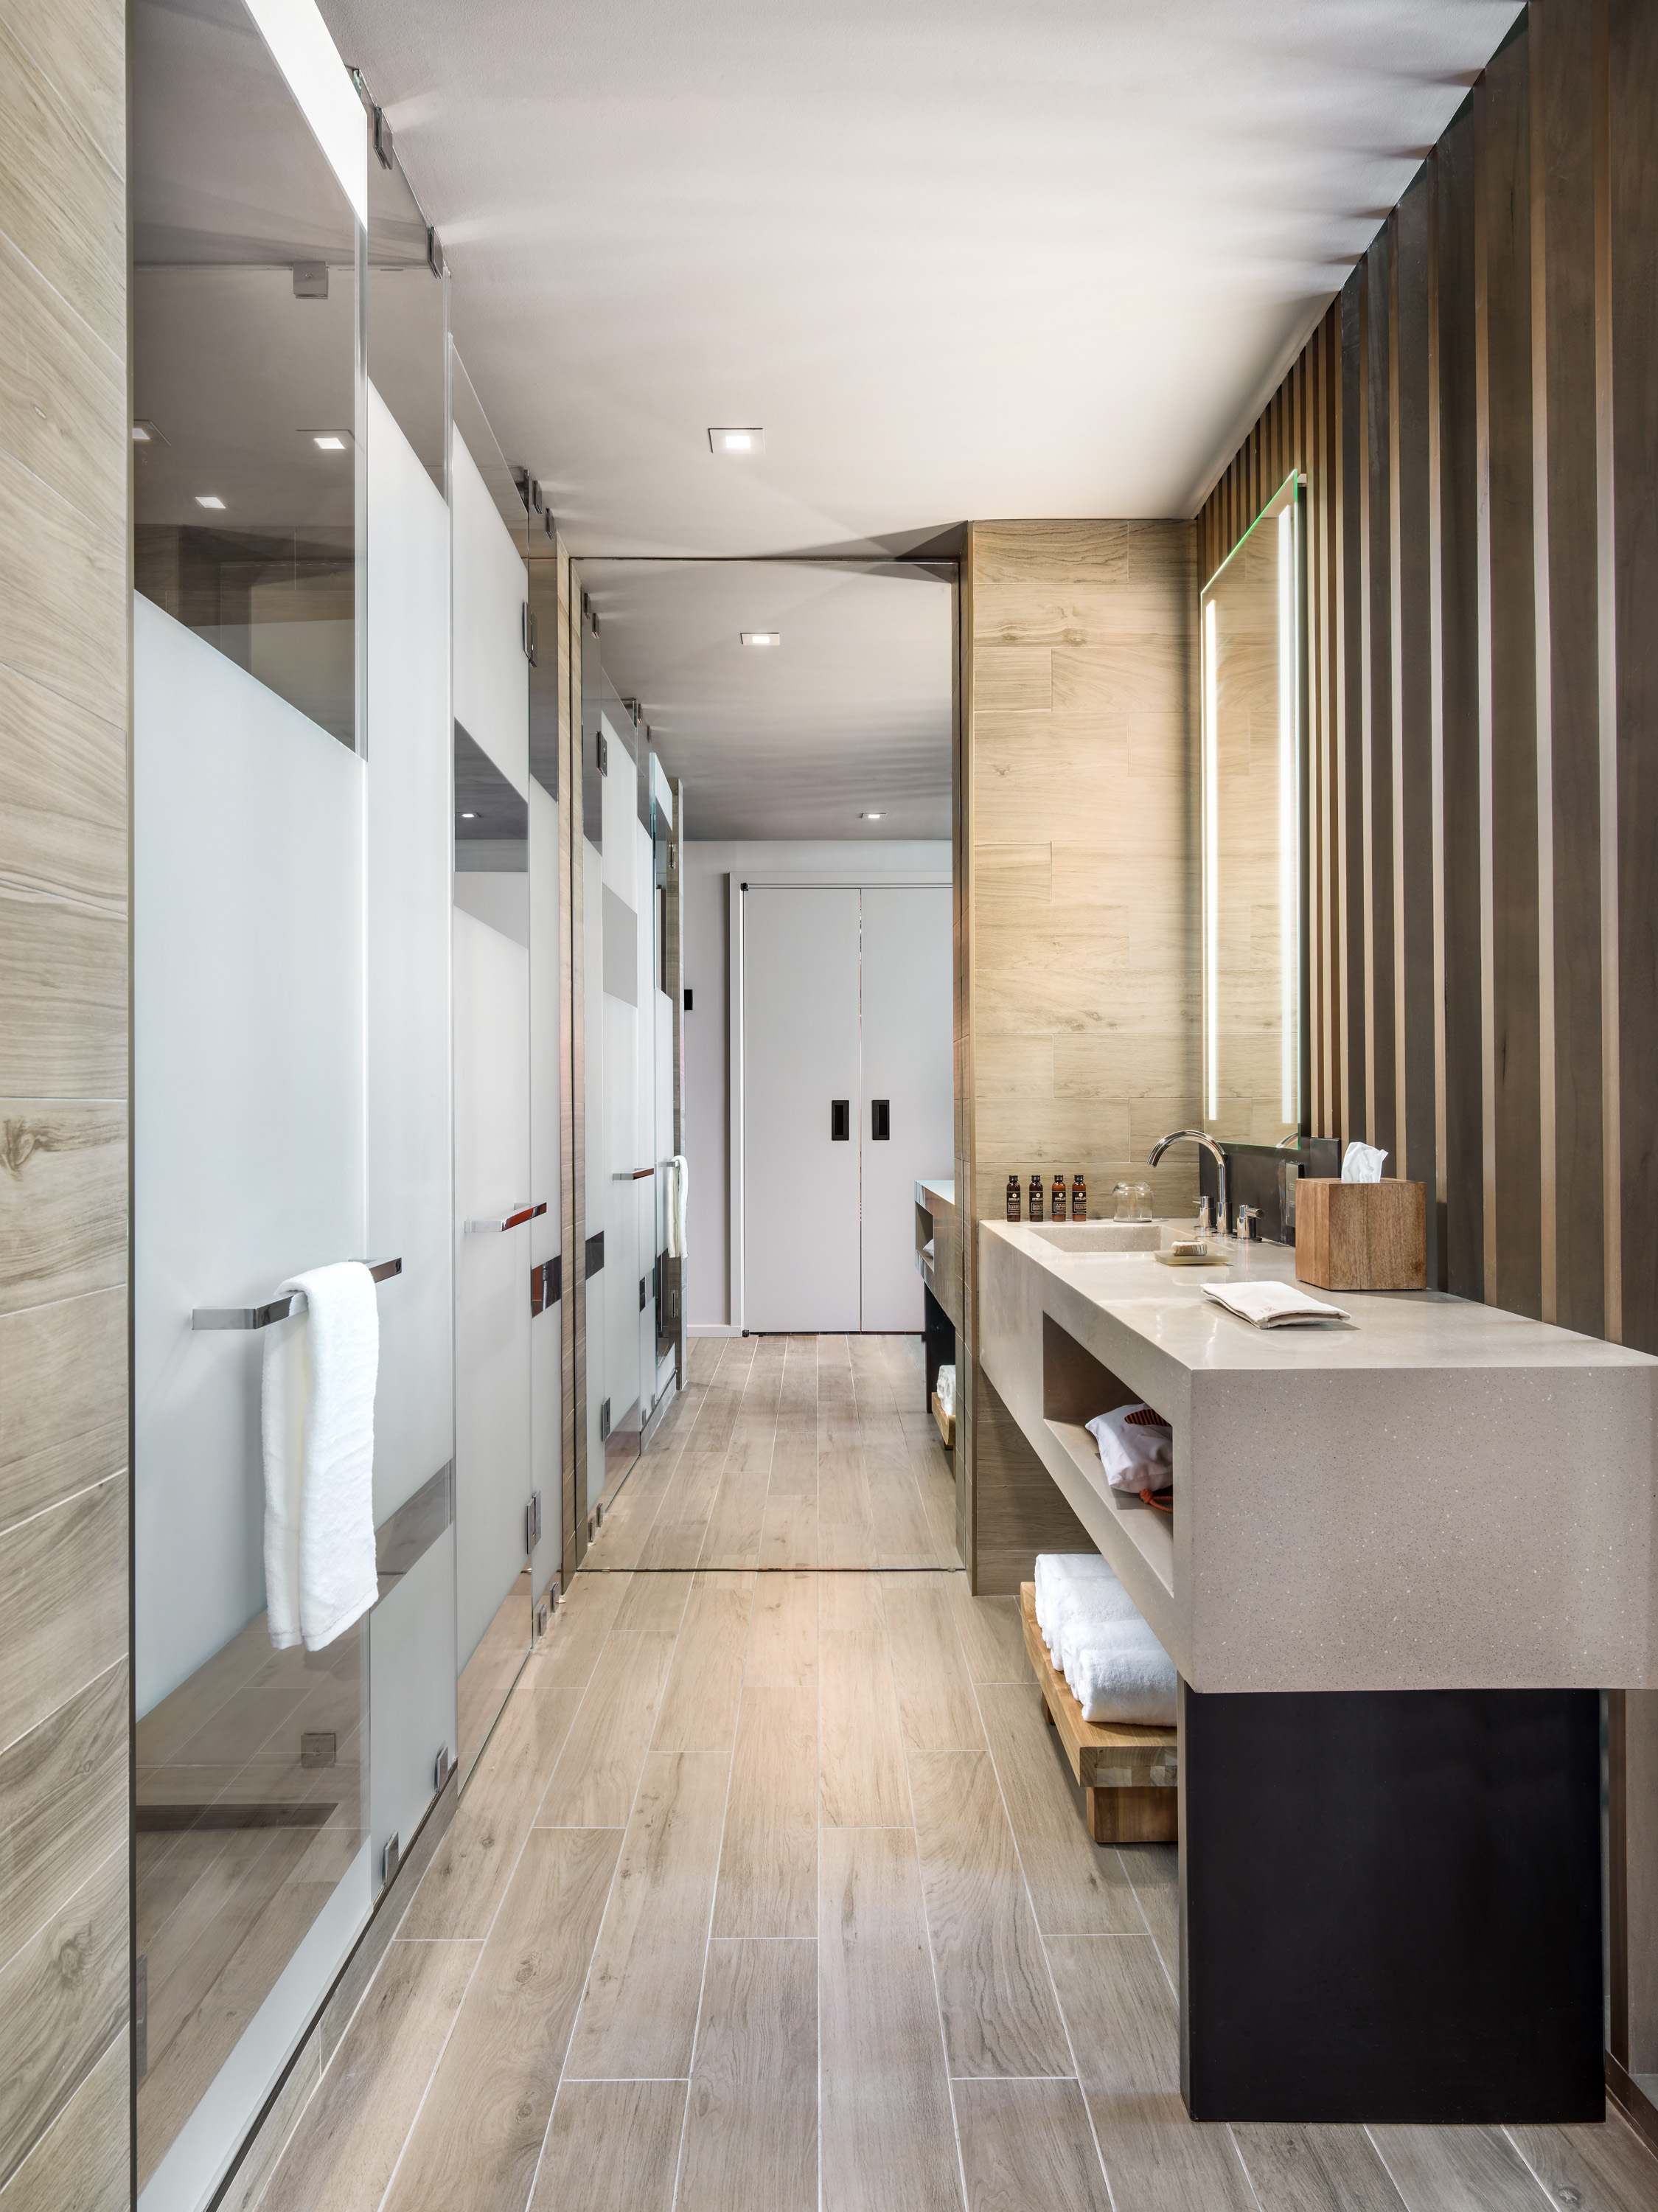 "For hotels where the bathroom's design does not incorporate a bath, Felicia Seignior, SVP of business development and brand at Apaiser likes ""beautiful and functional"" integrated basins."